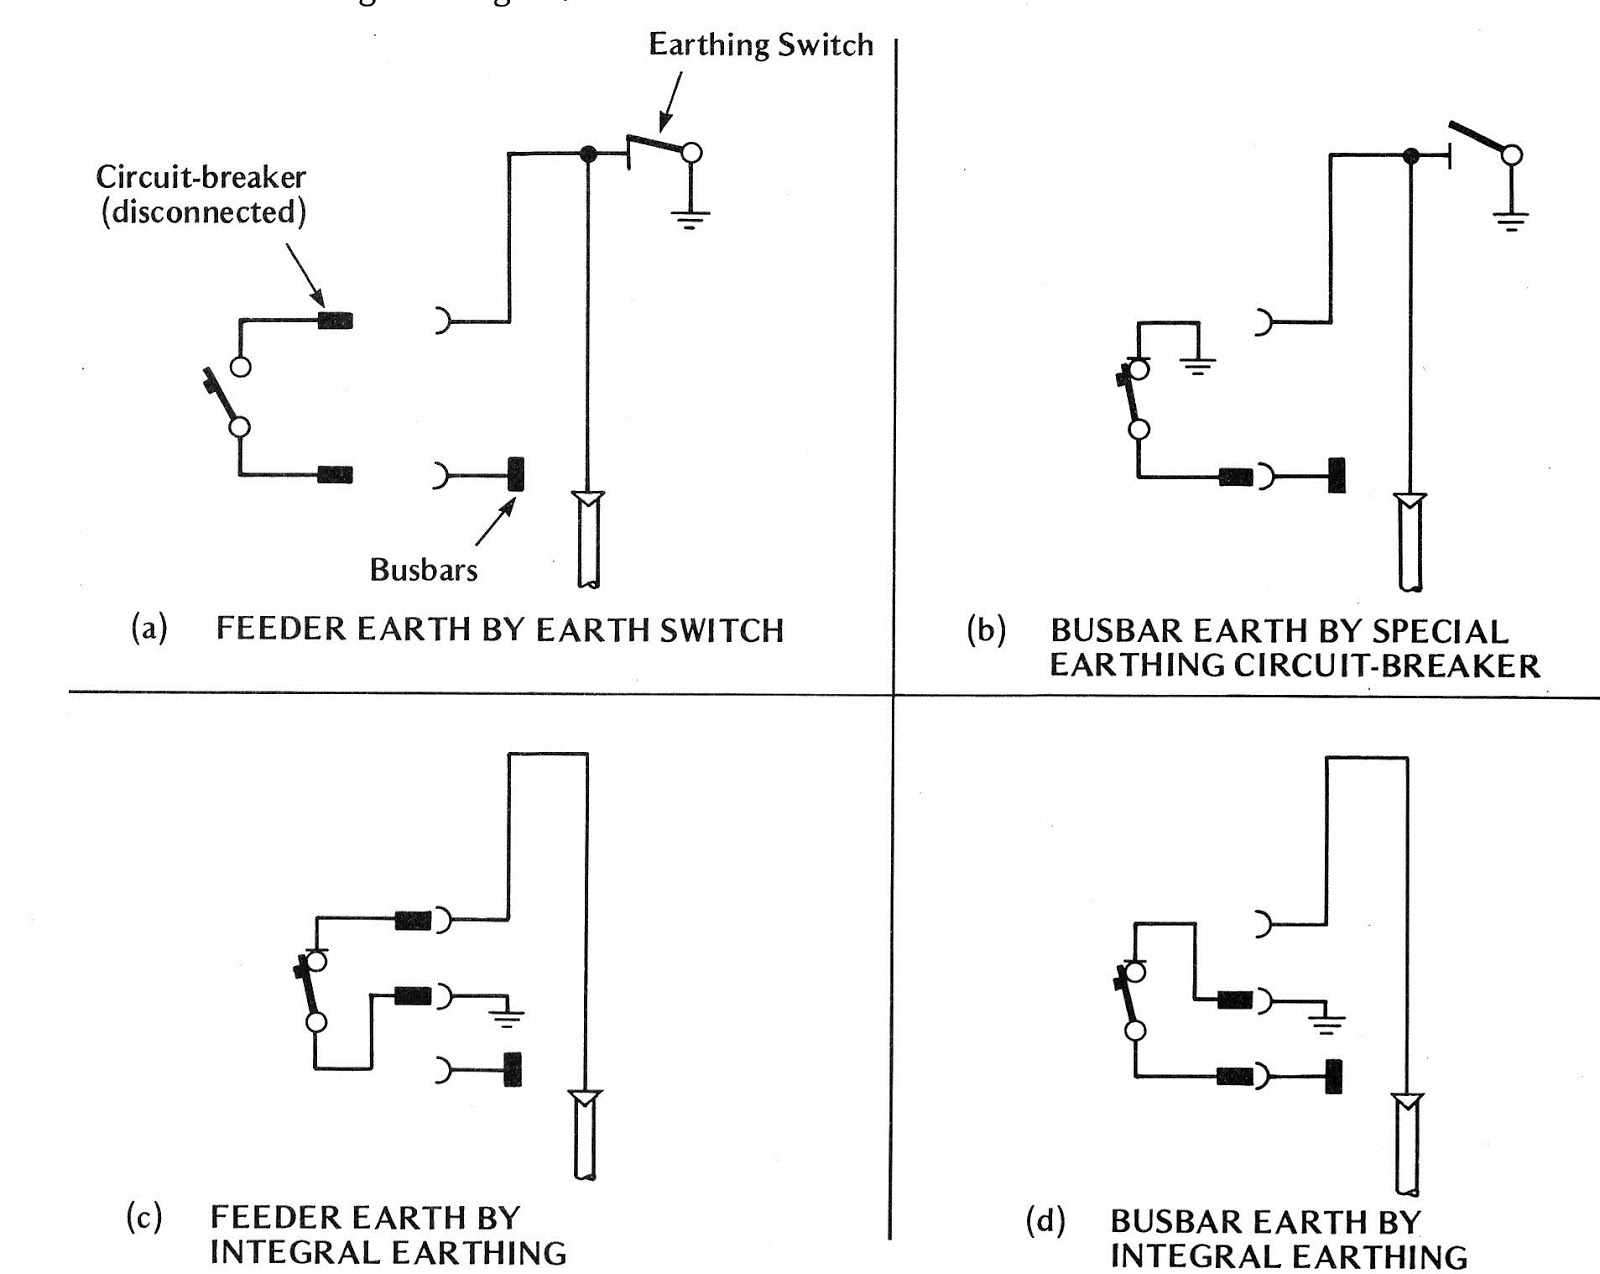 Iec Connector Symbol Receptacle Wiring Diagram Engineering Photos Videos And Articels Search Engine Emadrlc Blogspot Com Symbols Power